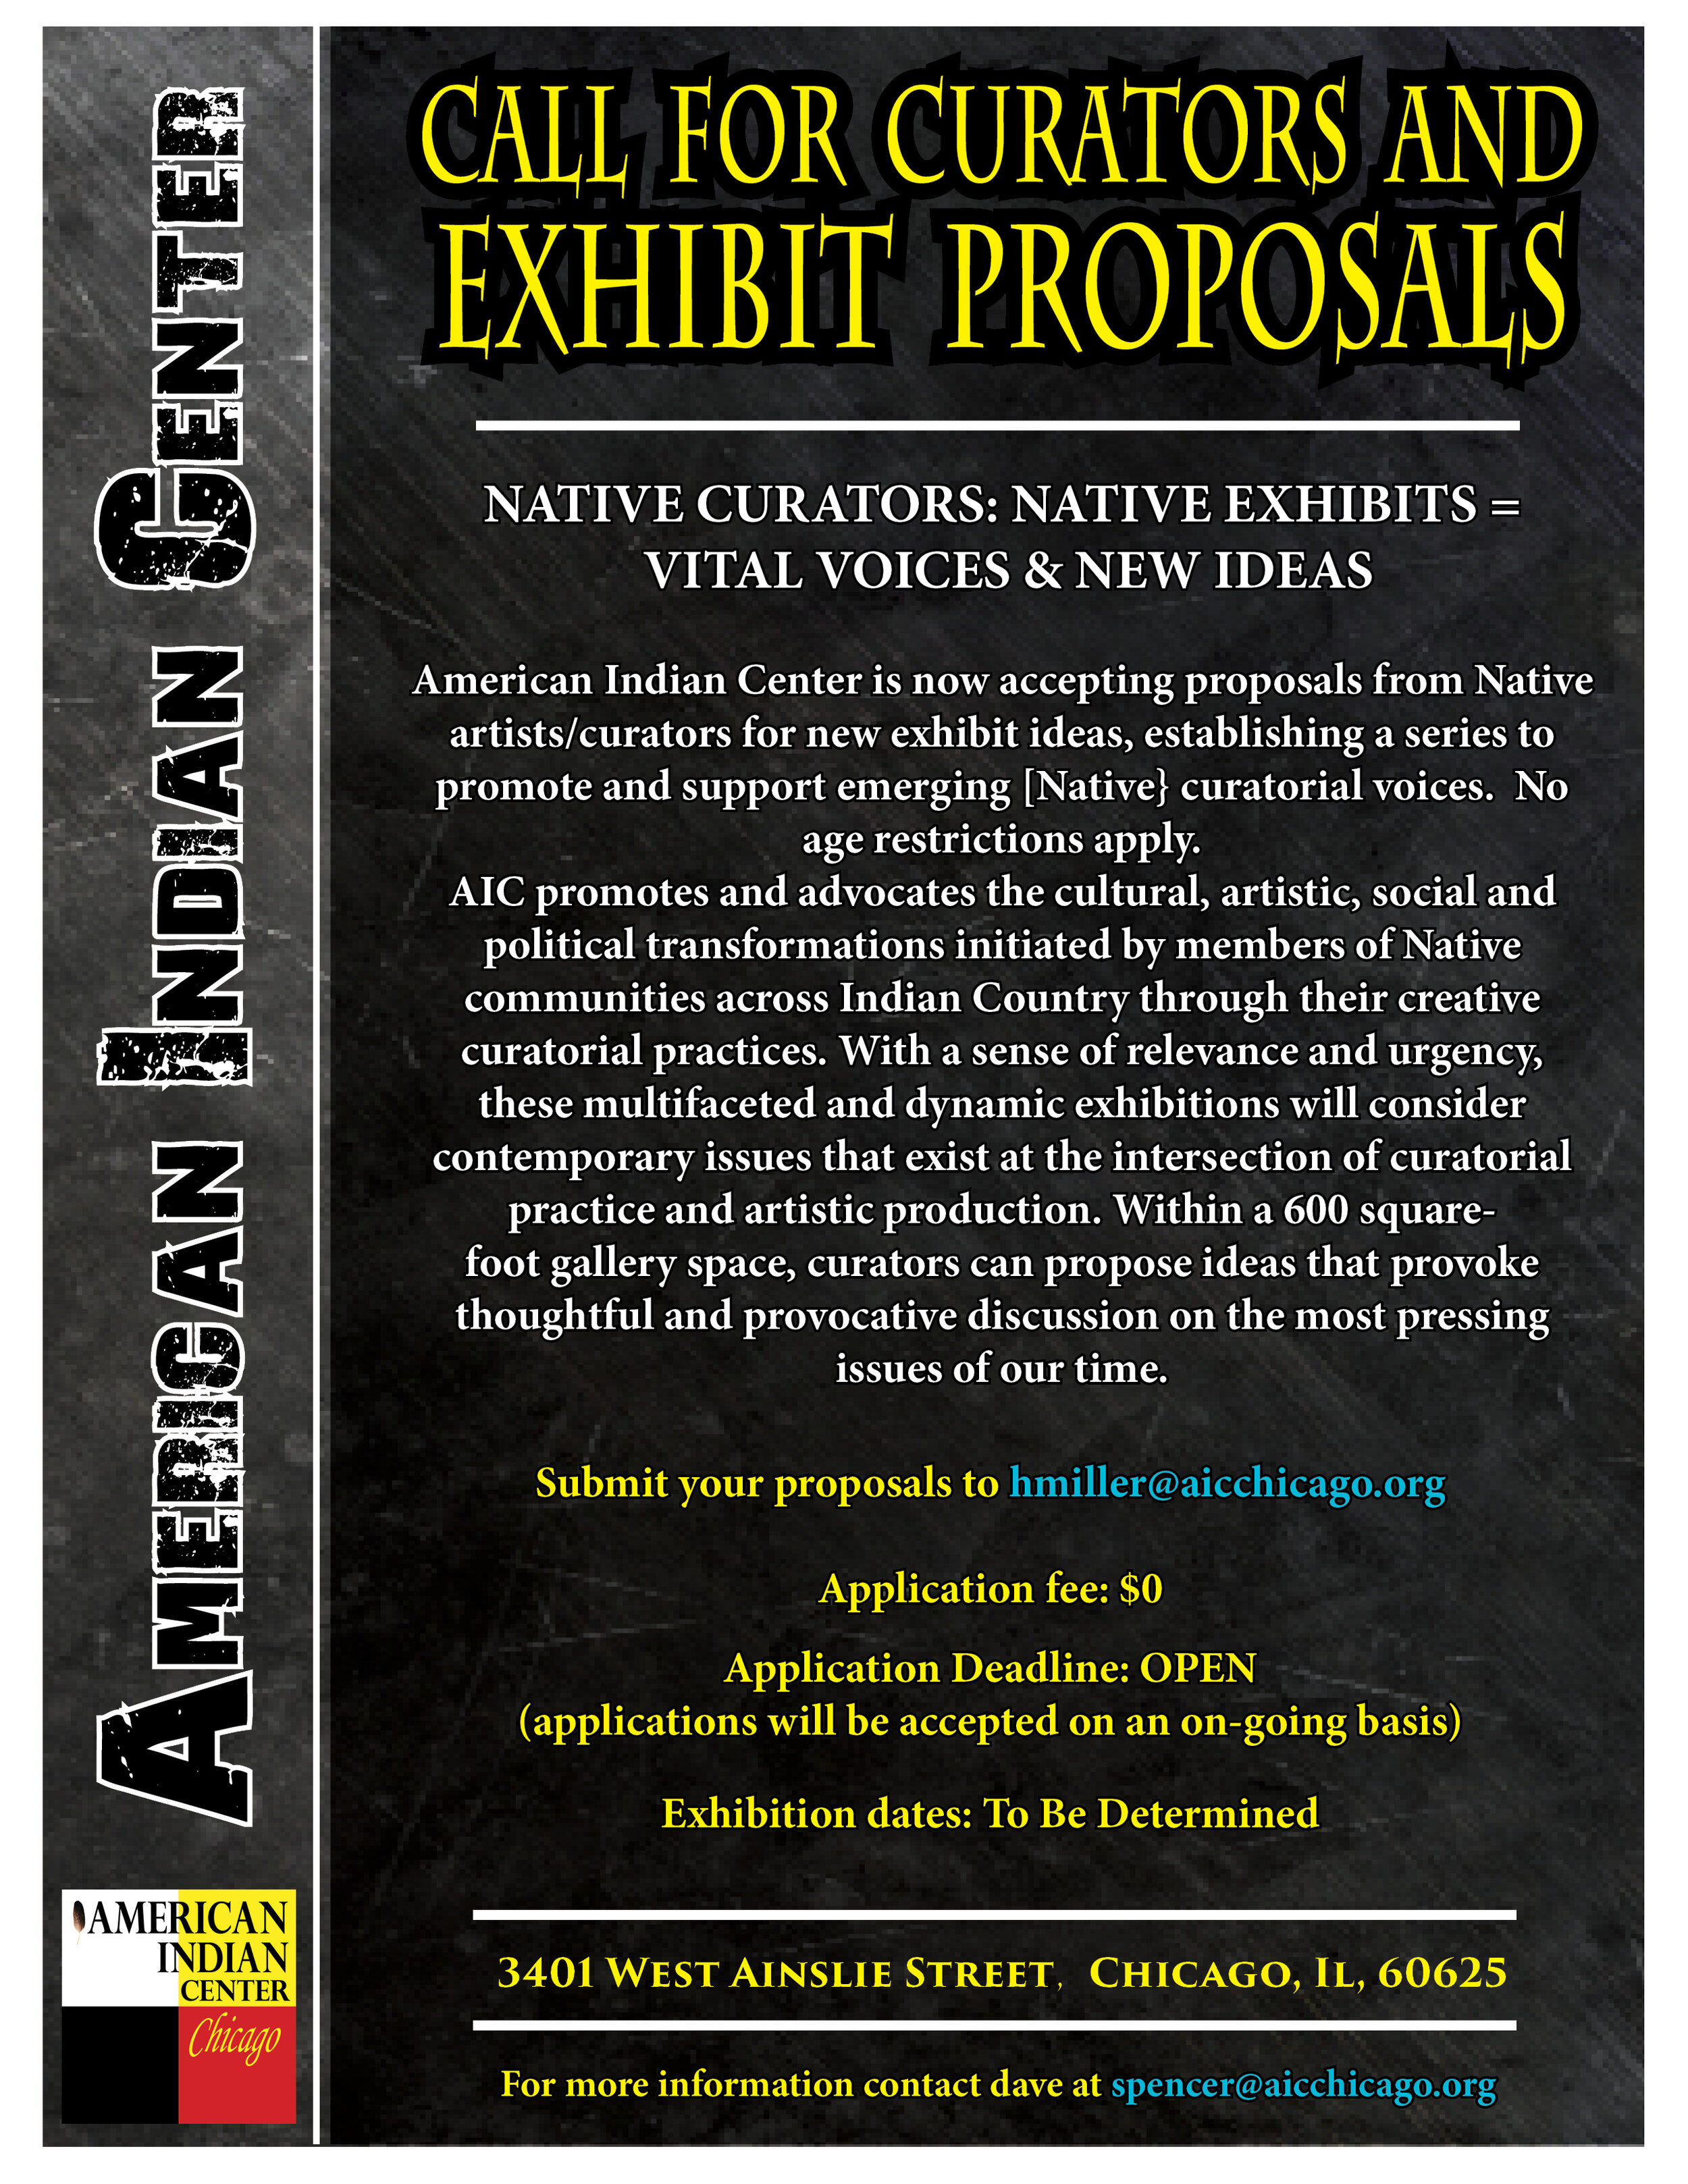 Call for Exhibit and Curators_Sep 2019.jpg